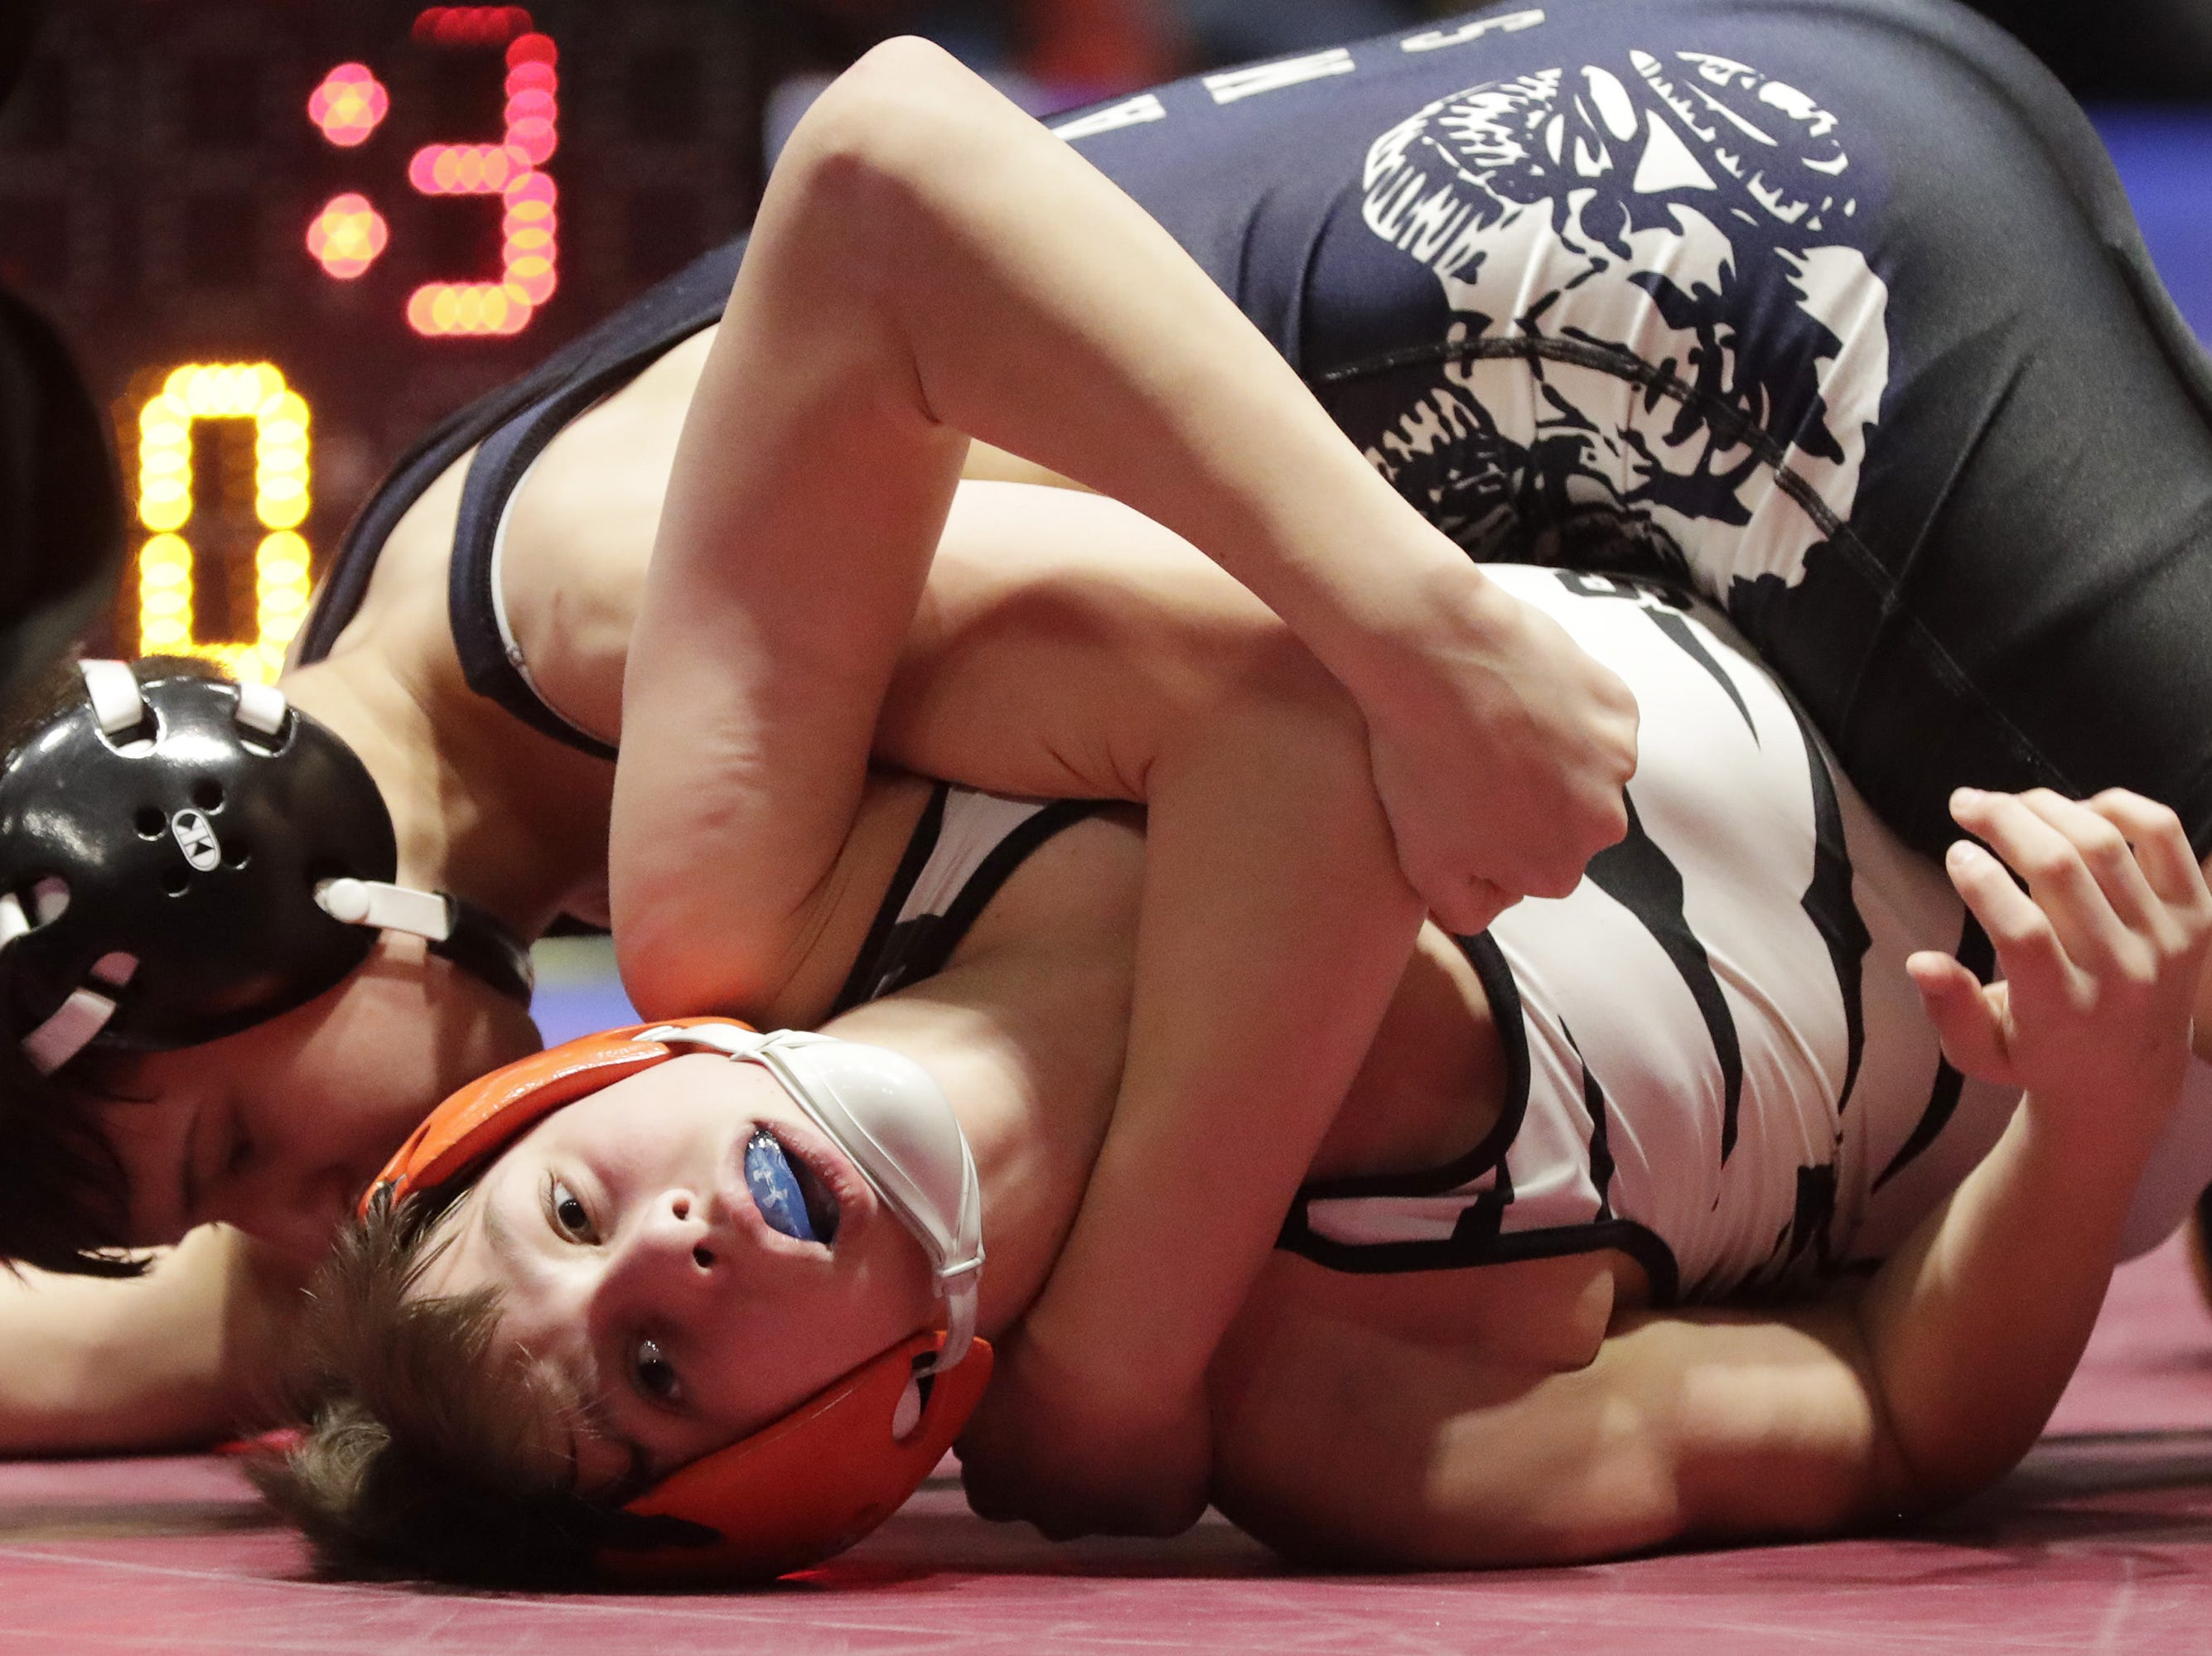 Stratford's Logan Gaulke, left, looks from the mat as Random Lake's Tanner Bierenbaum controls him in a 106-pound match, Saturday, March 2, 2019, in Madison, Wis.